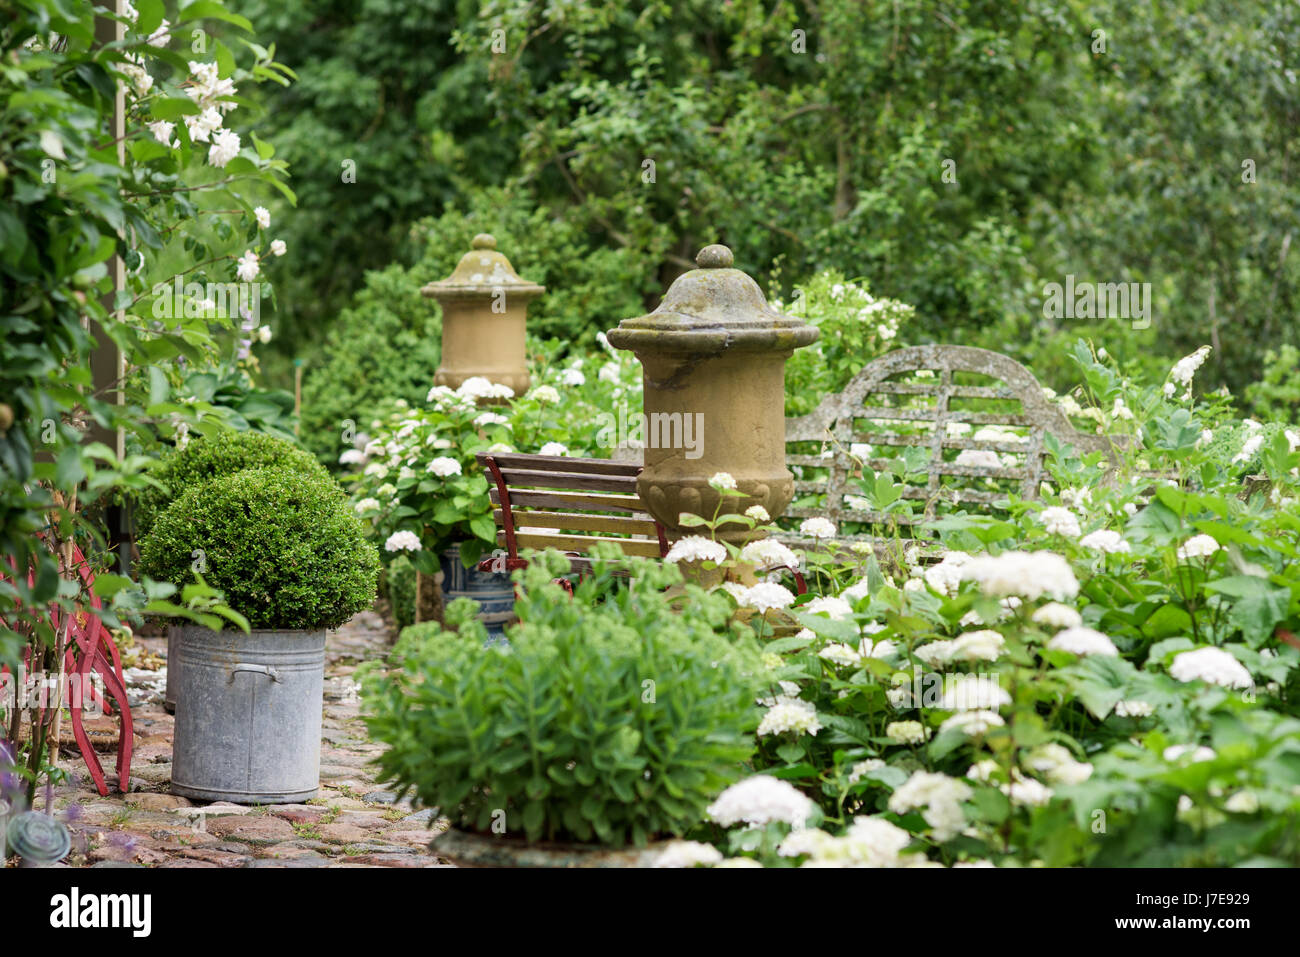 Pebble stone path with clipped box sphere and folding chair in grounds of 17th century farmhouse - Stock Image